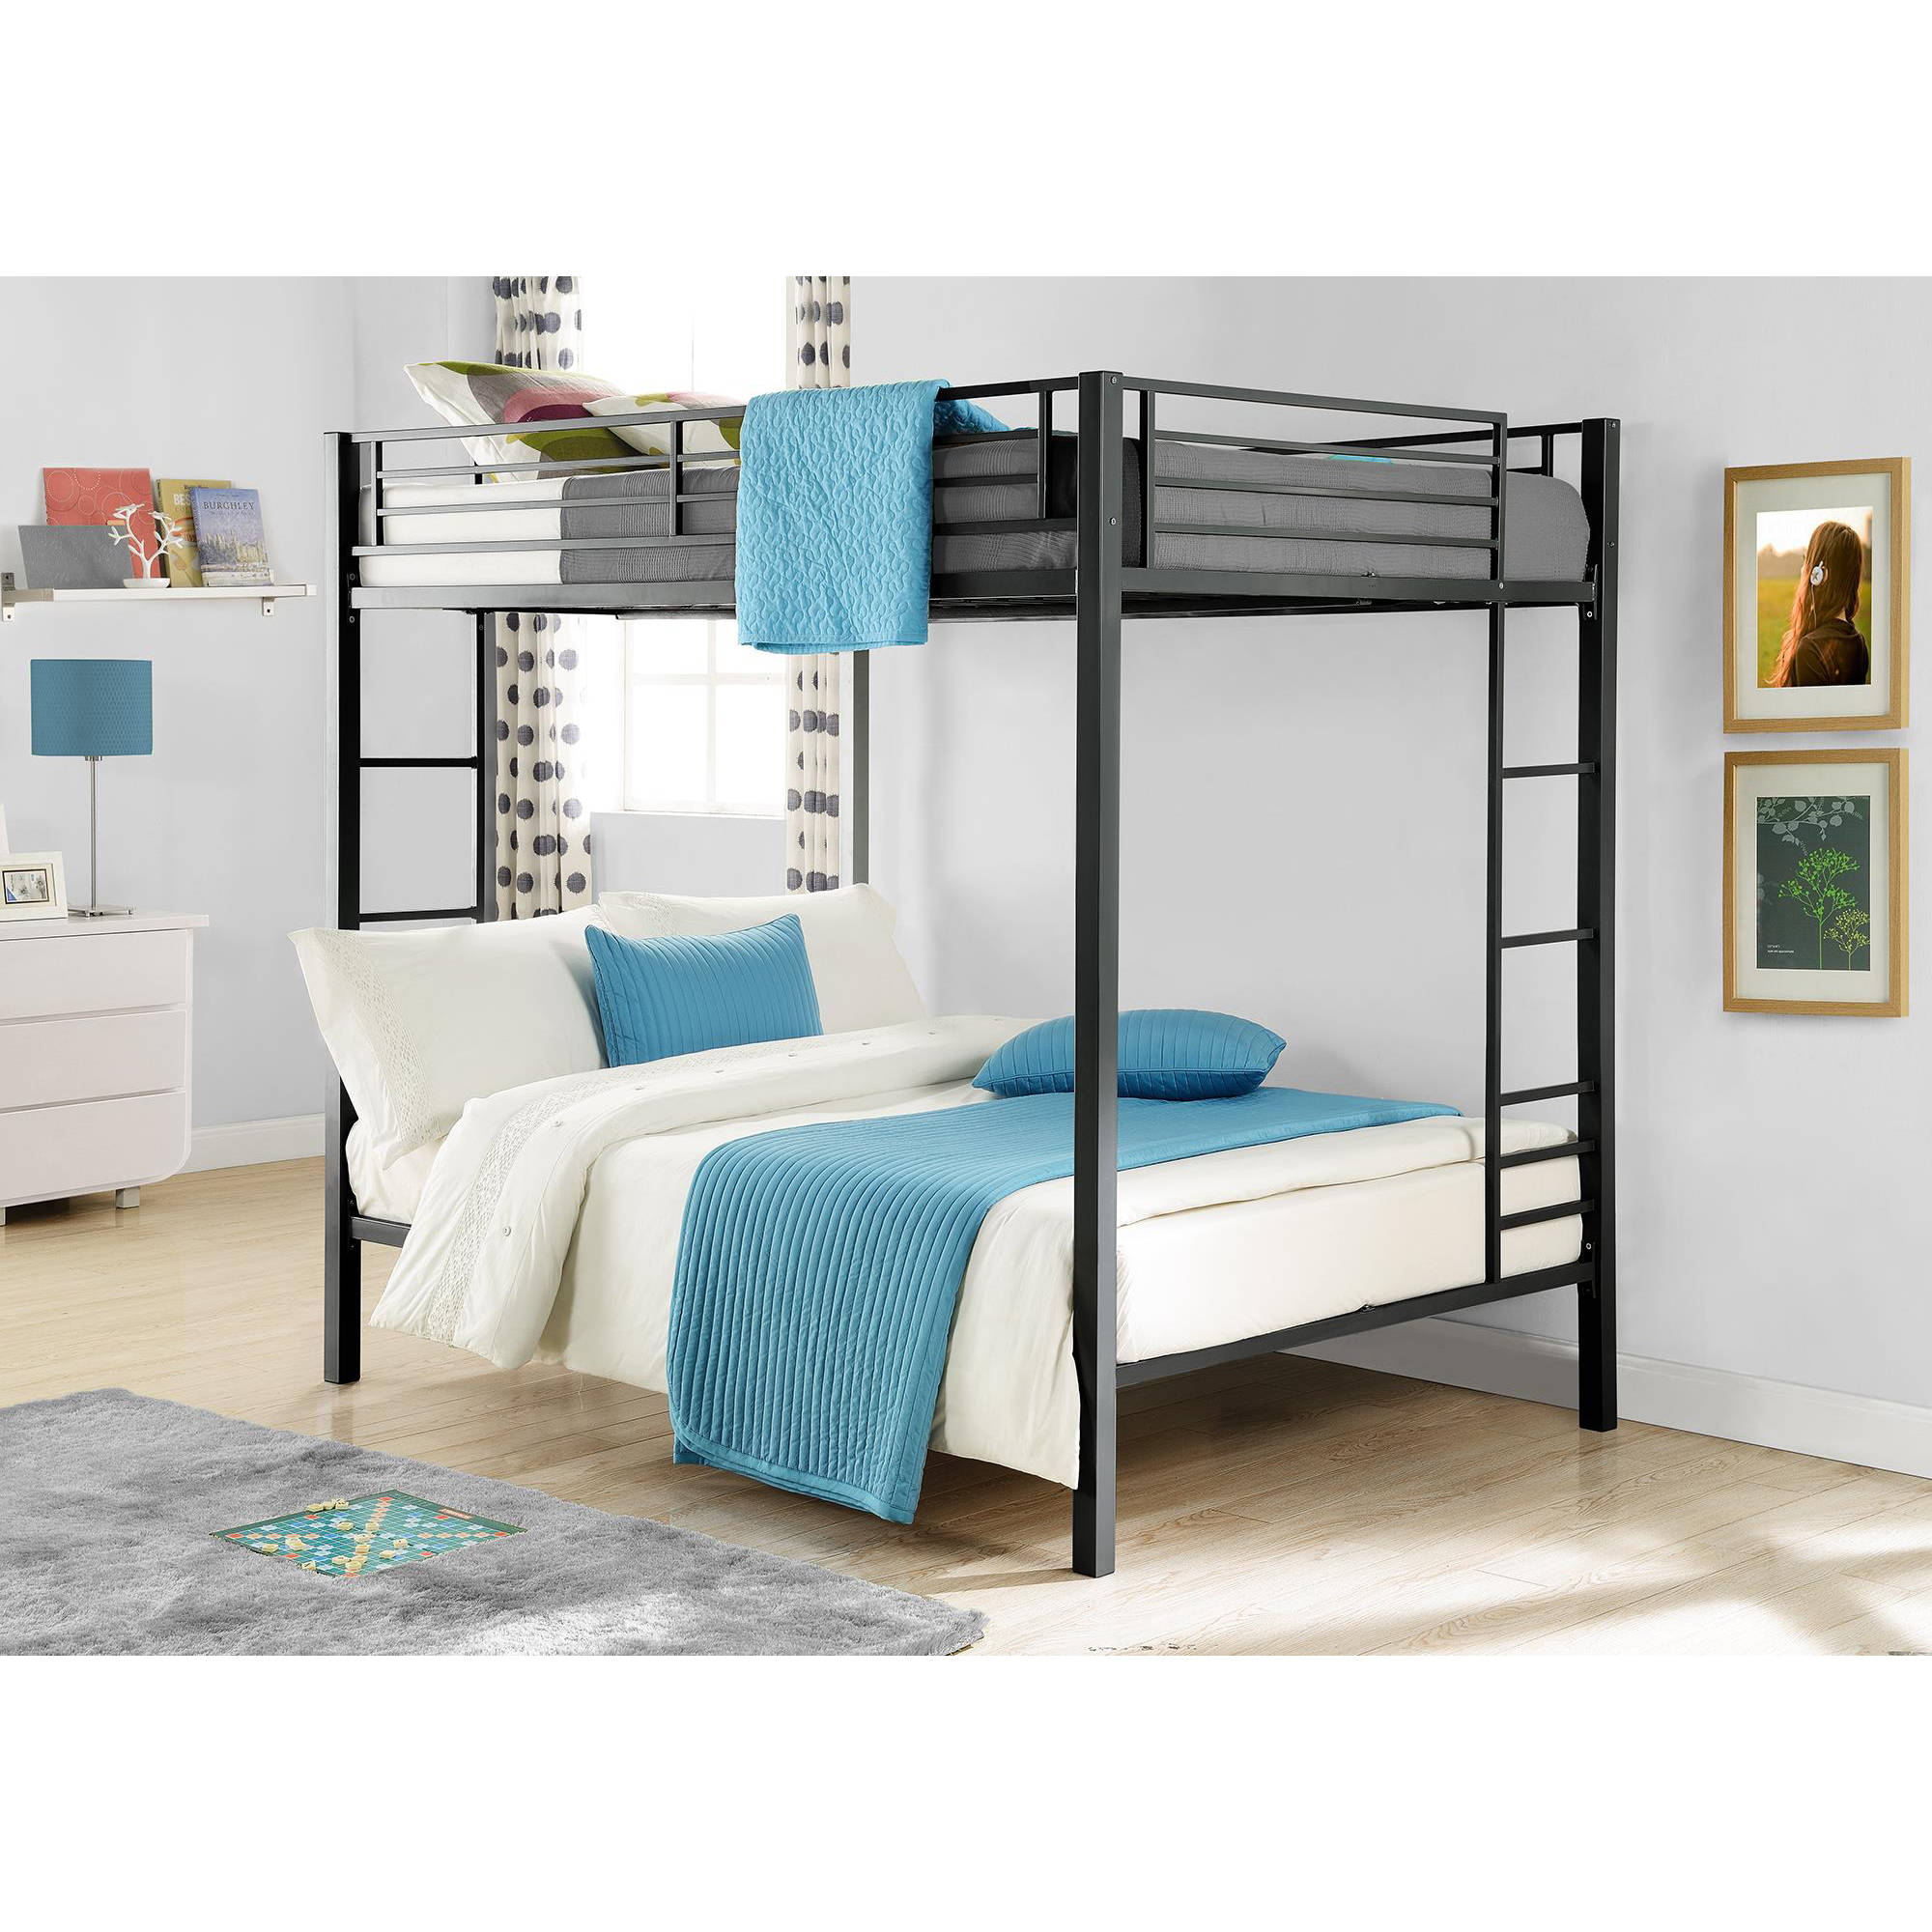 Dorel Full-Over-Full Metal Bunk Bed, Multiple Finishes